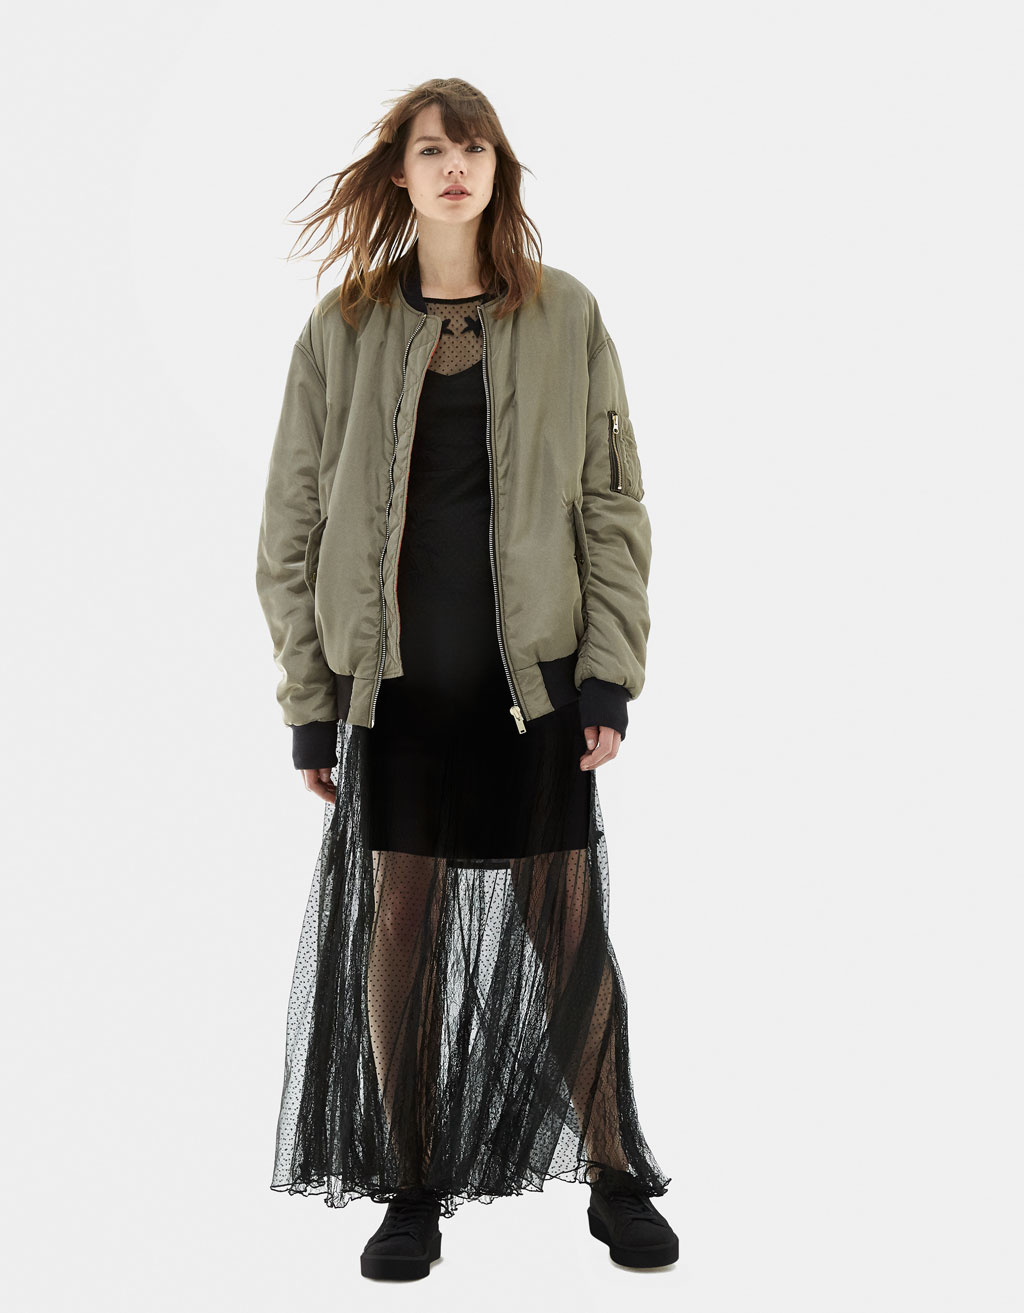 Oversized bomber jacket with gathered sleeves